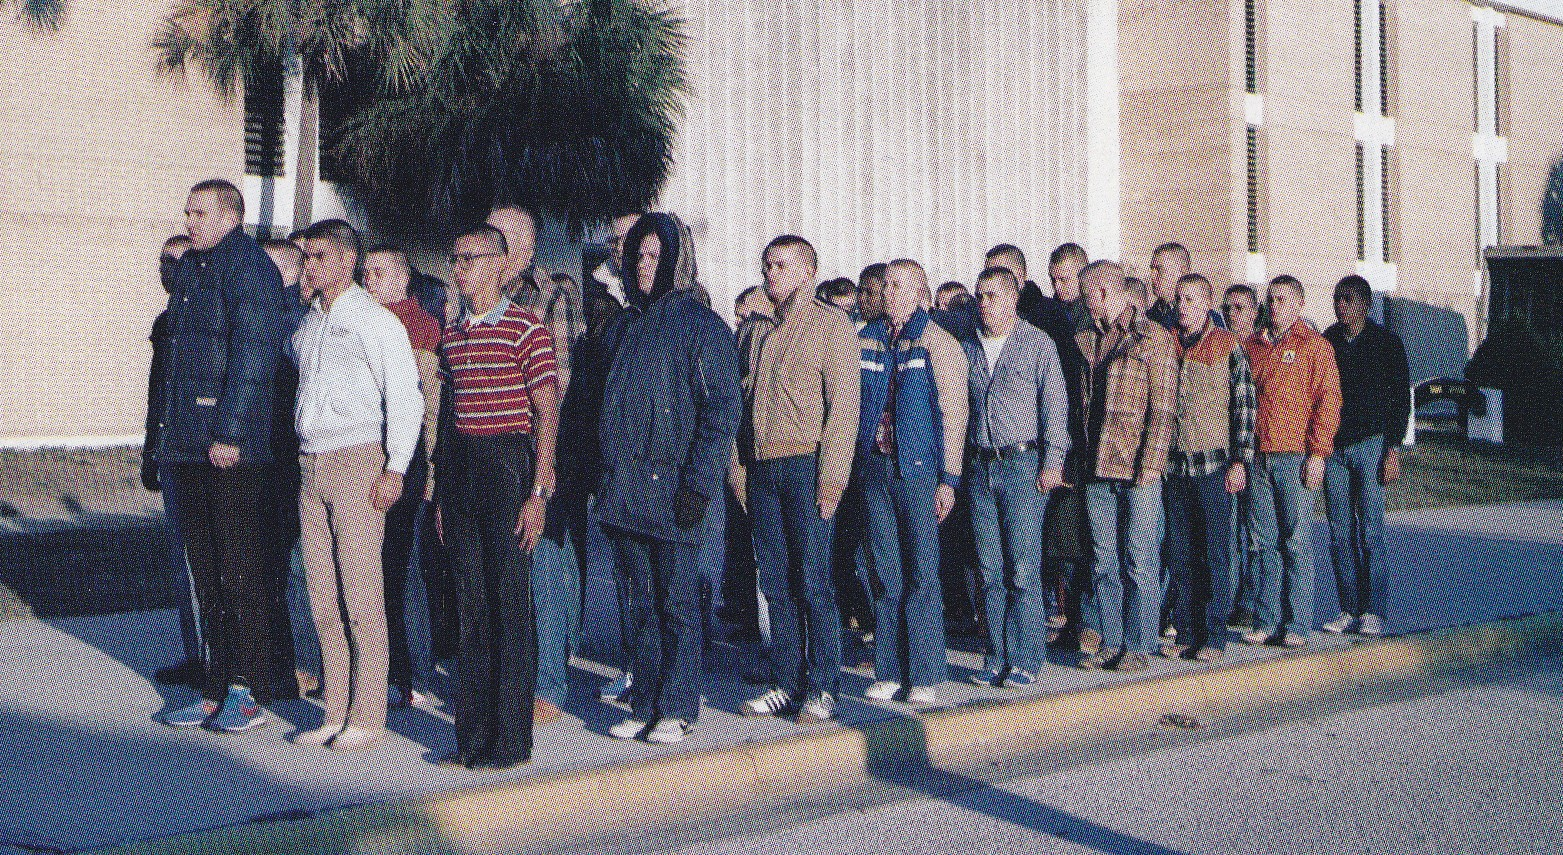 Tommy Mondello first formation in boot camp Orlando, Florida 1981